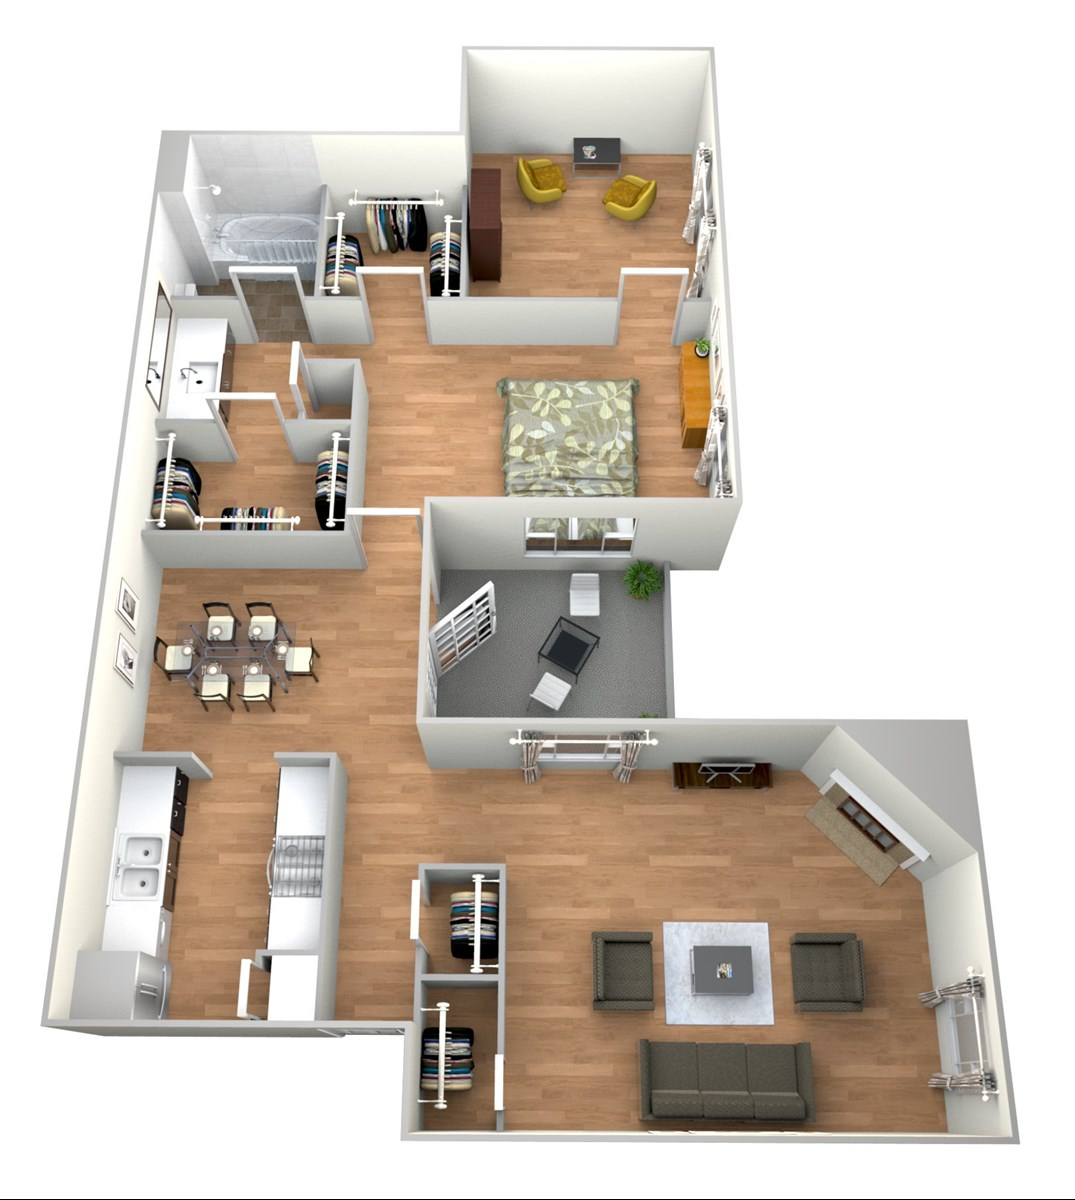 909 sq. ft. 1x1 S floor plan